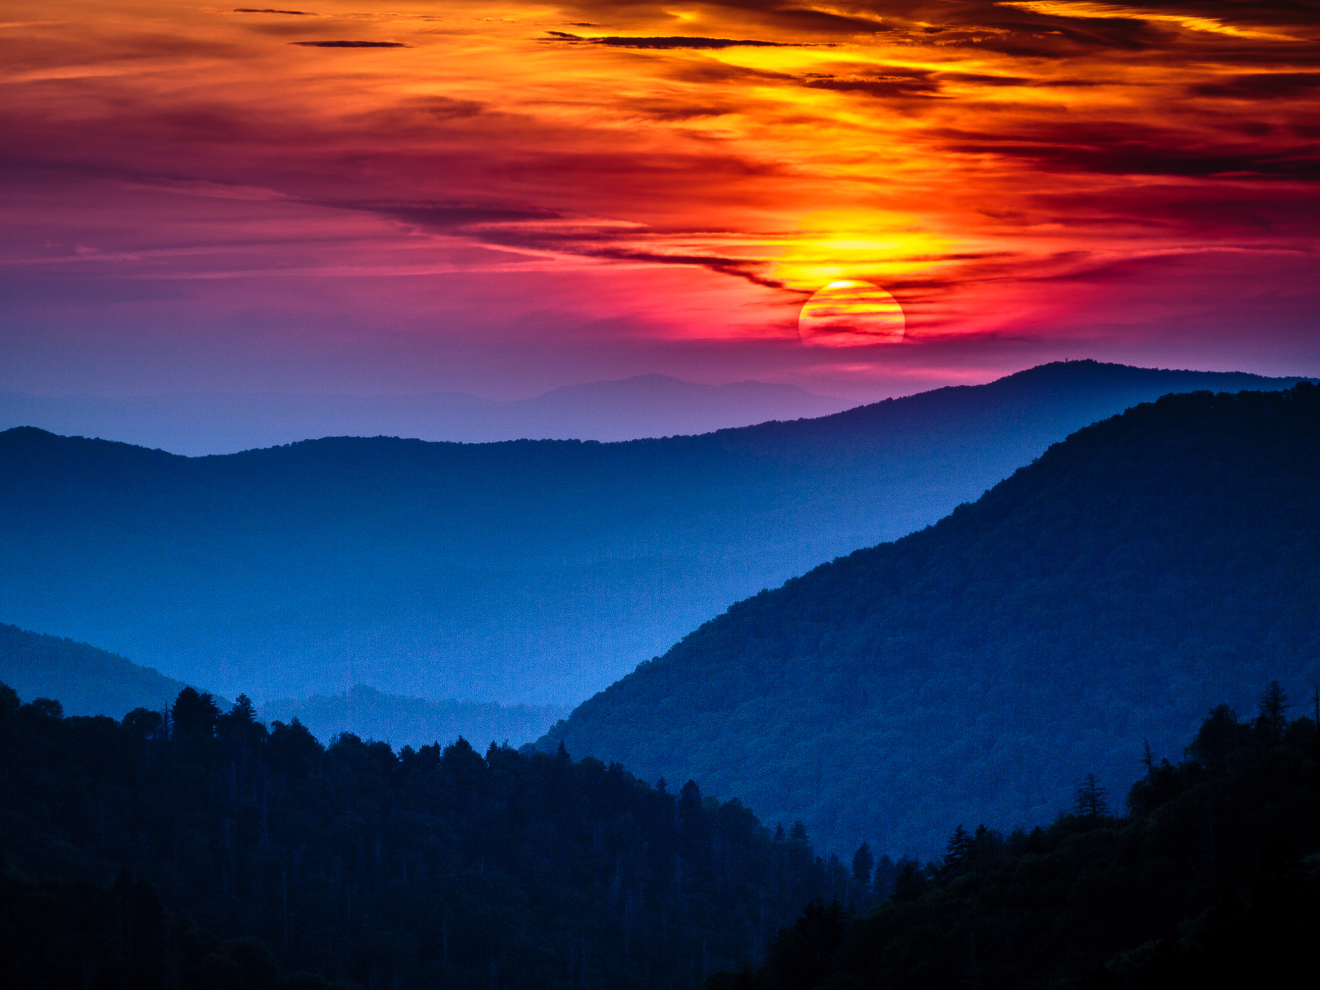 Great Smoky Mountains National Park spans North Carolina and Tennessee and includes forests renowned for their diversity of plant and animal life. The marvelous views of its mountains are becoming increasingly clouded in smog due to high levels of sulfur dioxide from the area's coal-fired power plants.